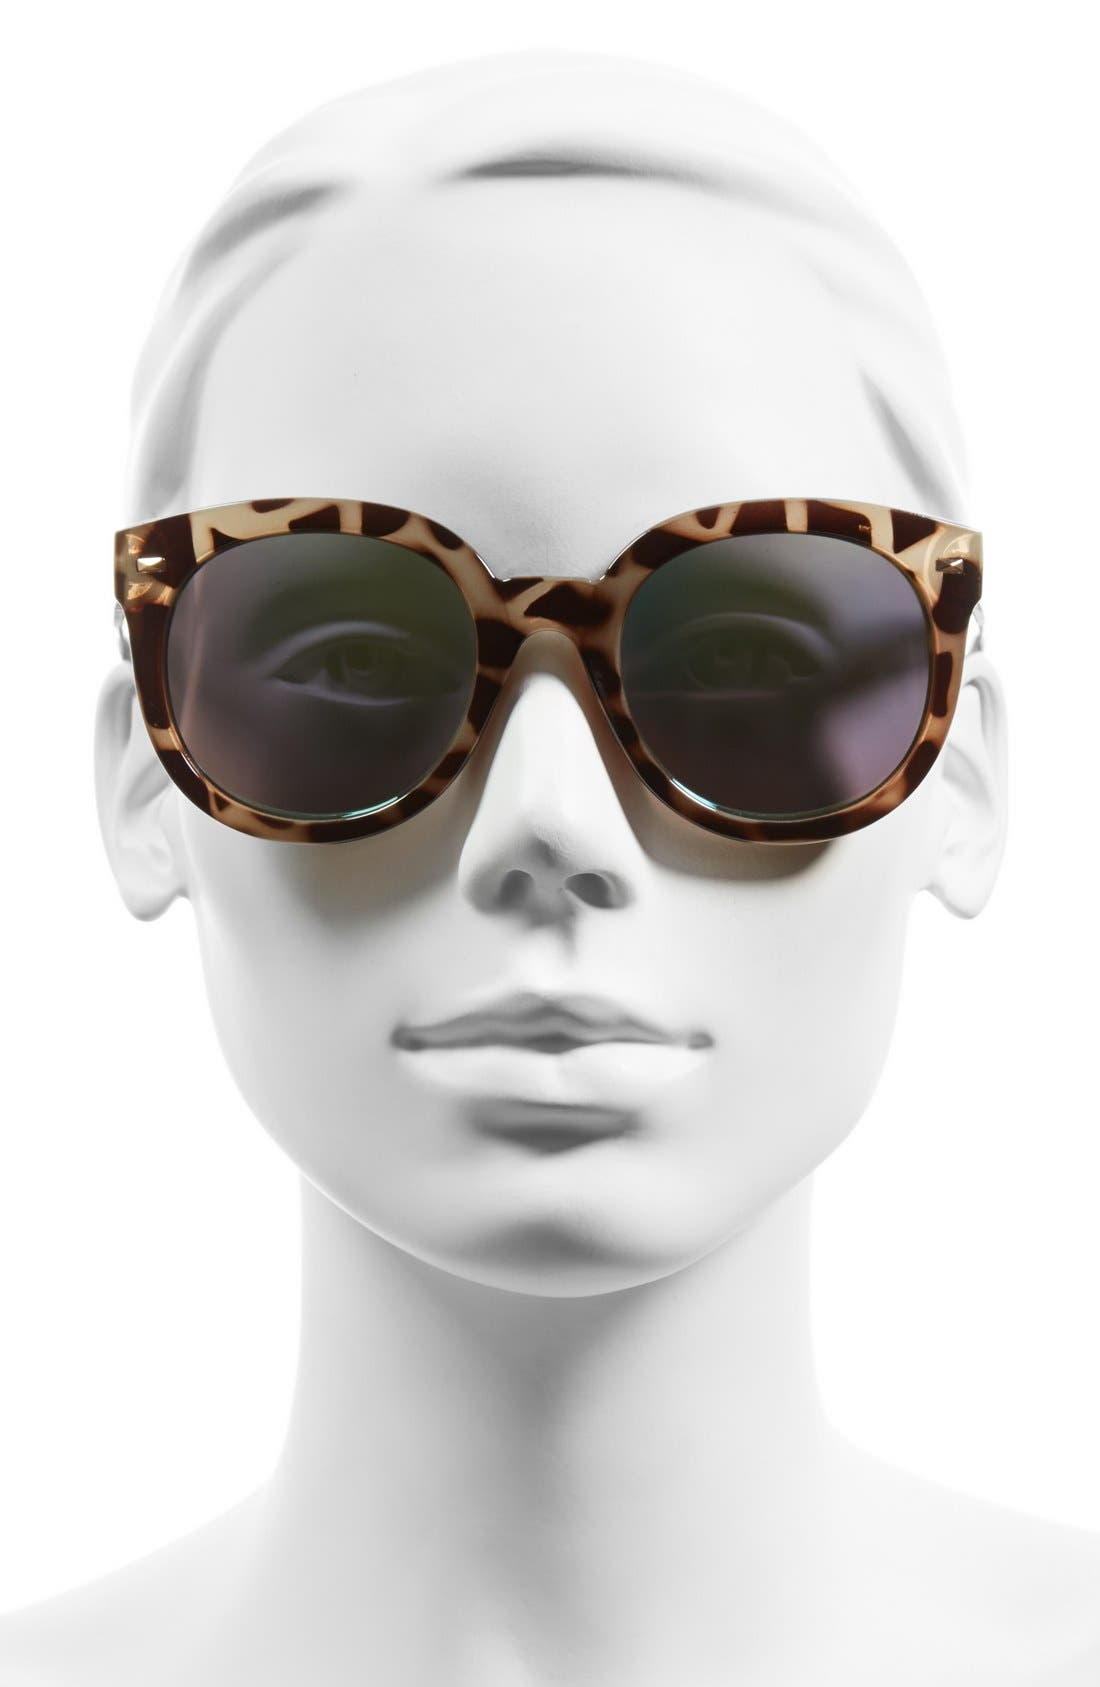 52mm Oversize Mirrored Sunglasses,                             Alternate thumbnail 3, color,